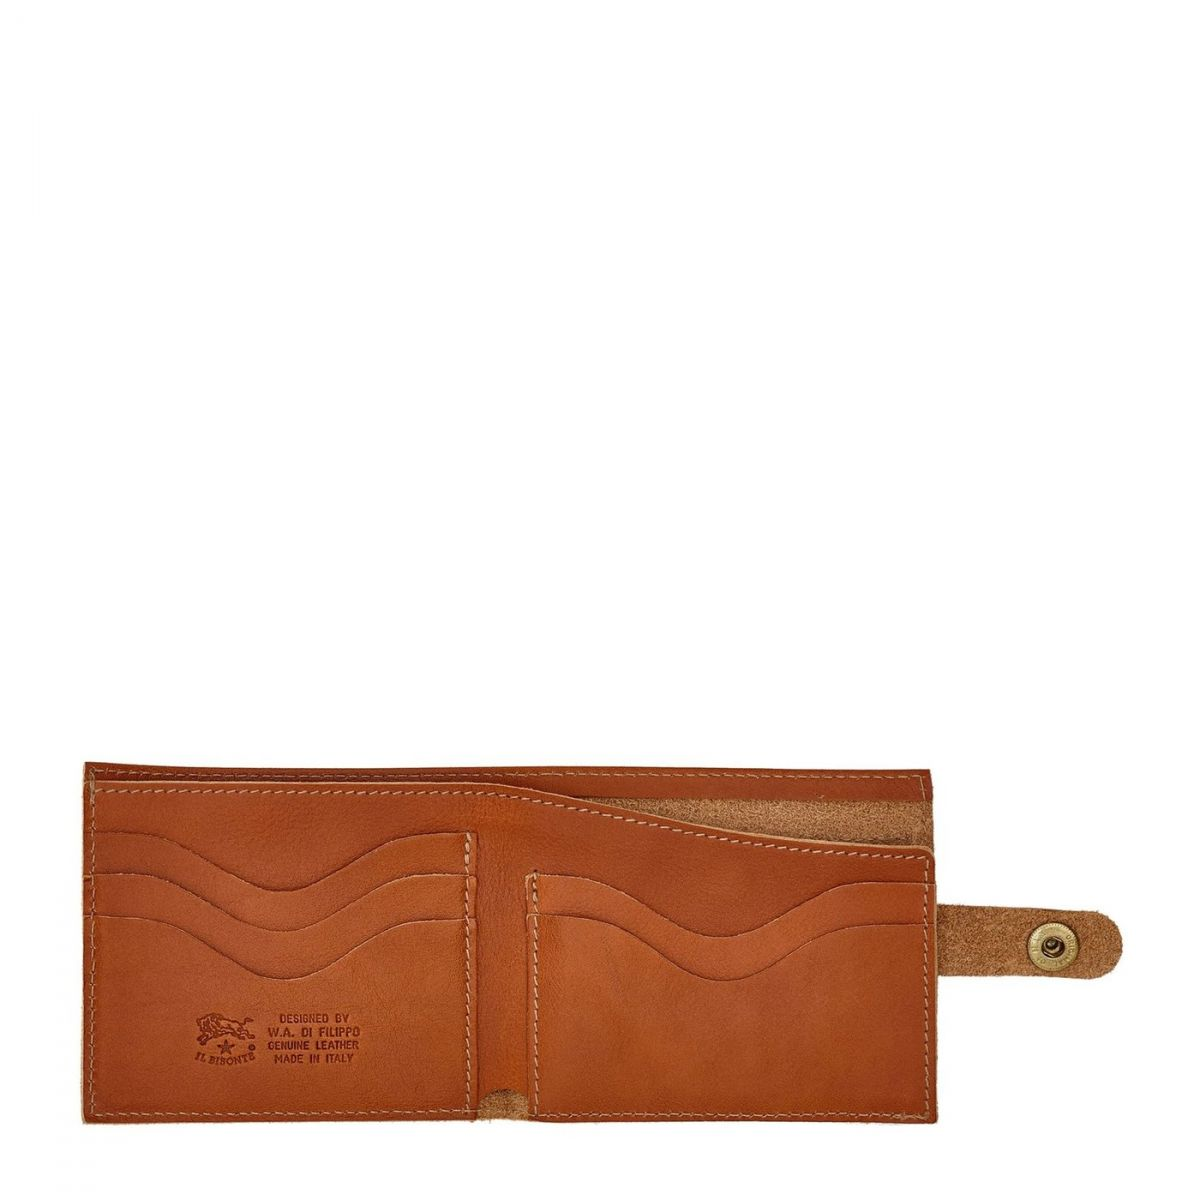 Men's Bi-Fold Wallet  in Cowhide Double Leather SBW034 color Caramel | Details